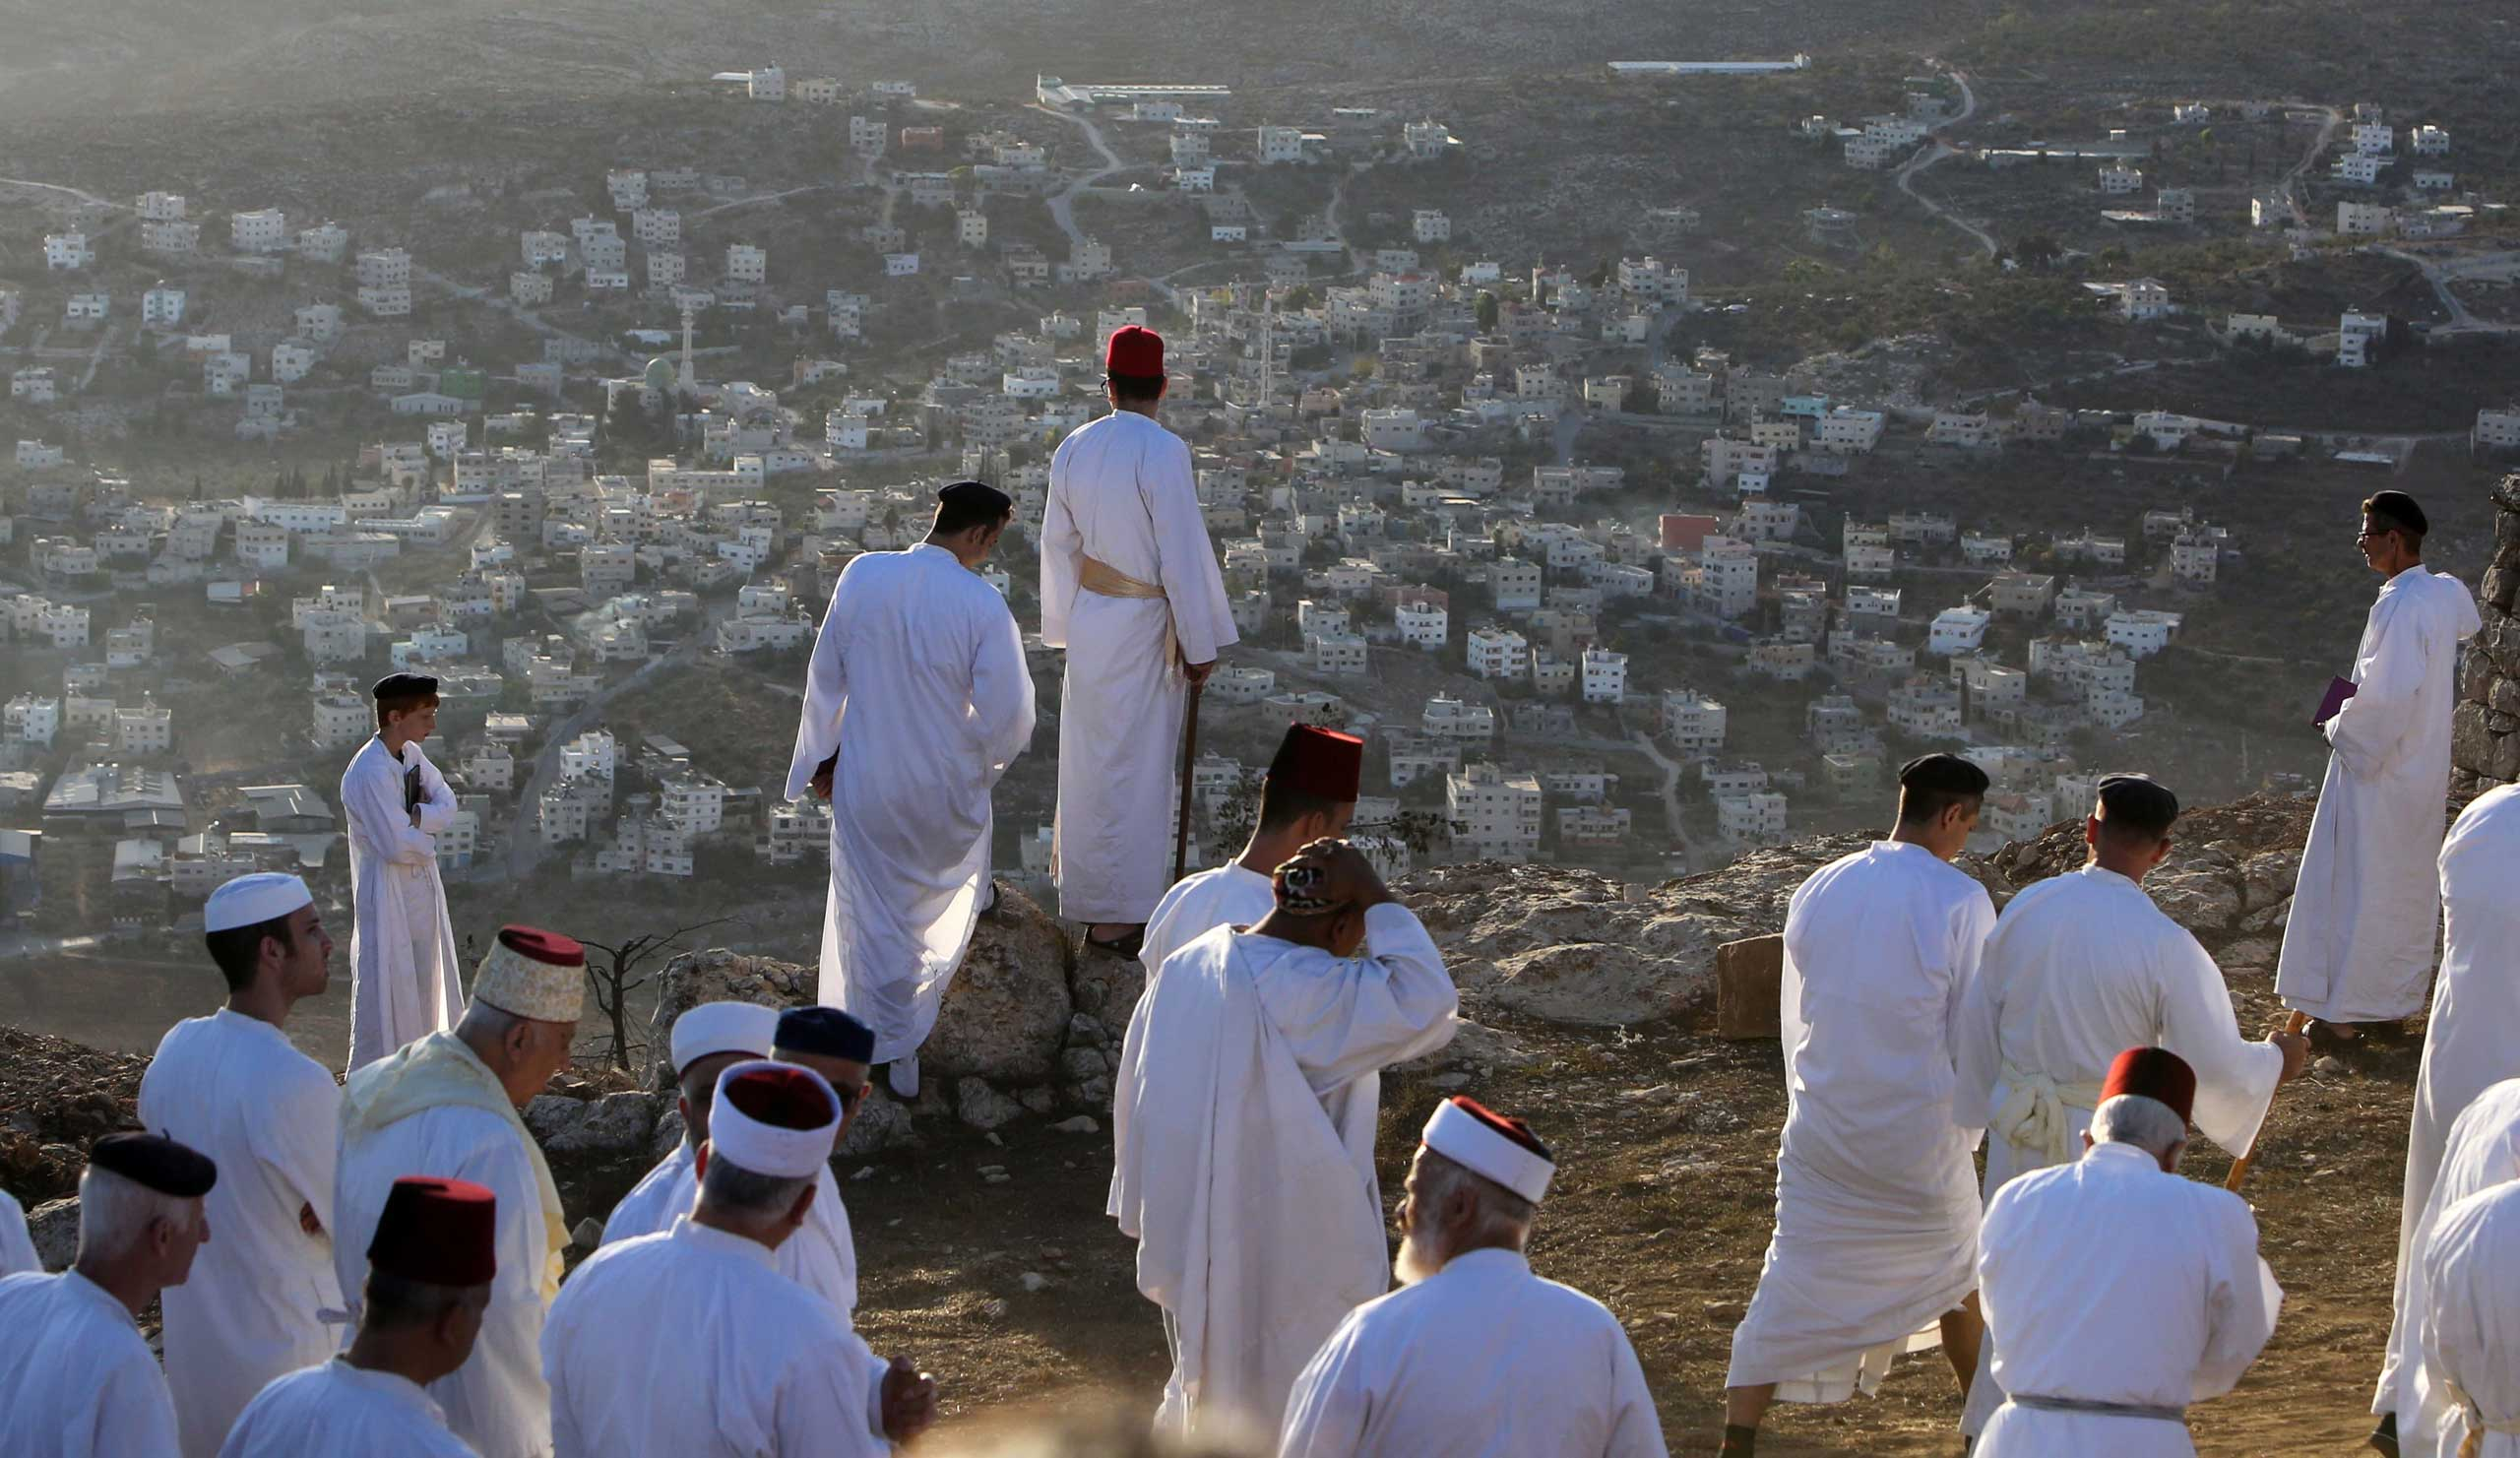 Oct. 8, 2014. Samaritans take part in celebrations marking the holiday of Sukkot (the Tabernacles Feast) on Mount Gerizim, near the northern West Bank city of Nablus. Sukkot marks the exodus of the ancient Hebrew people from Egypt.